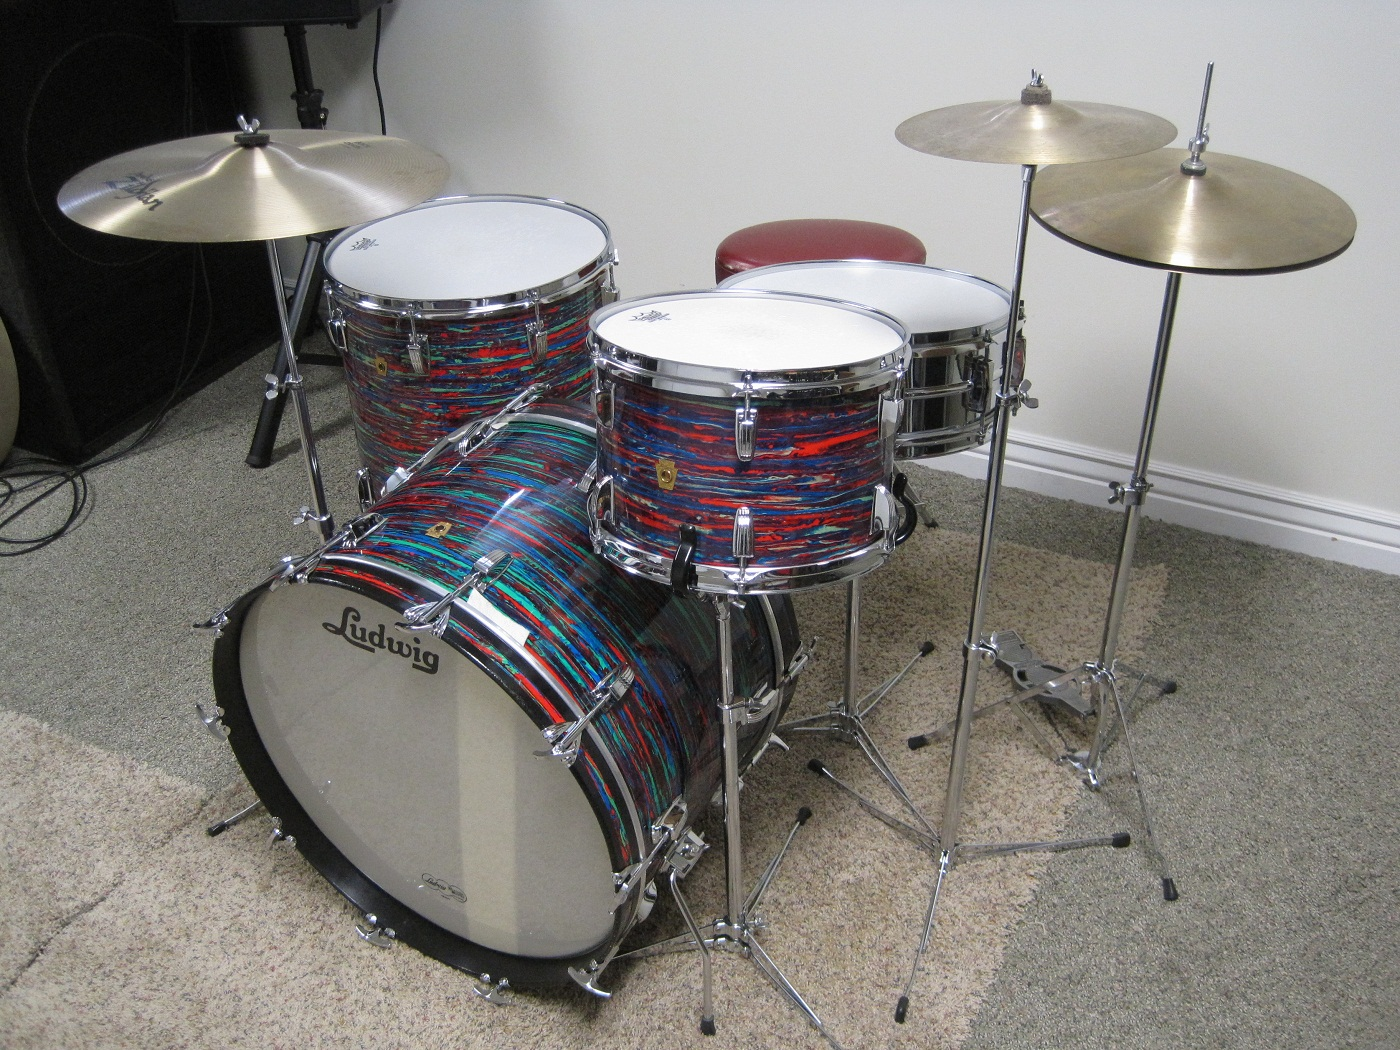 Psych red virgin bass drum